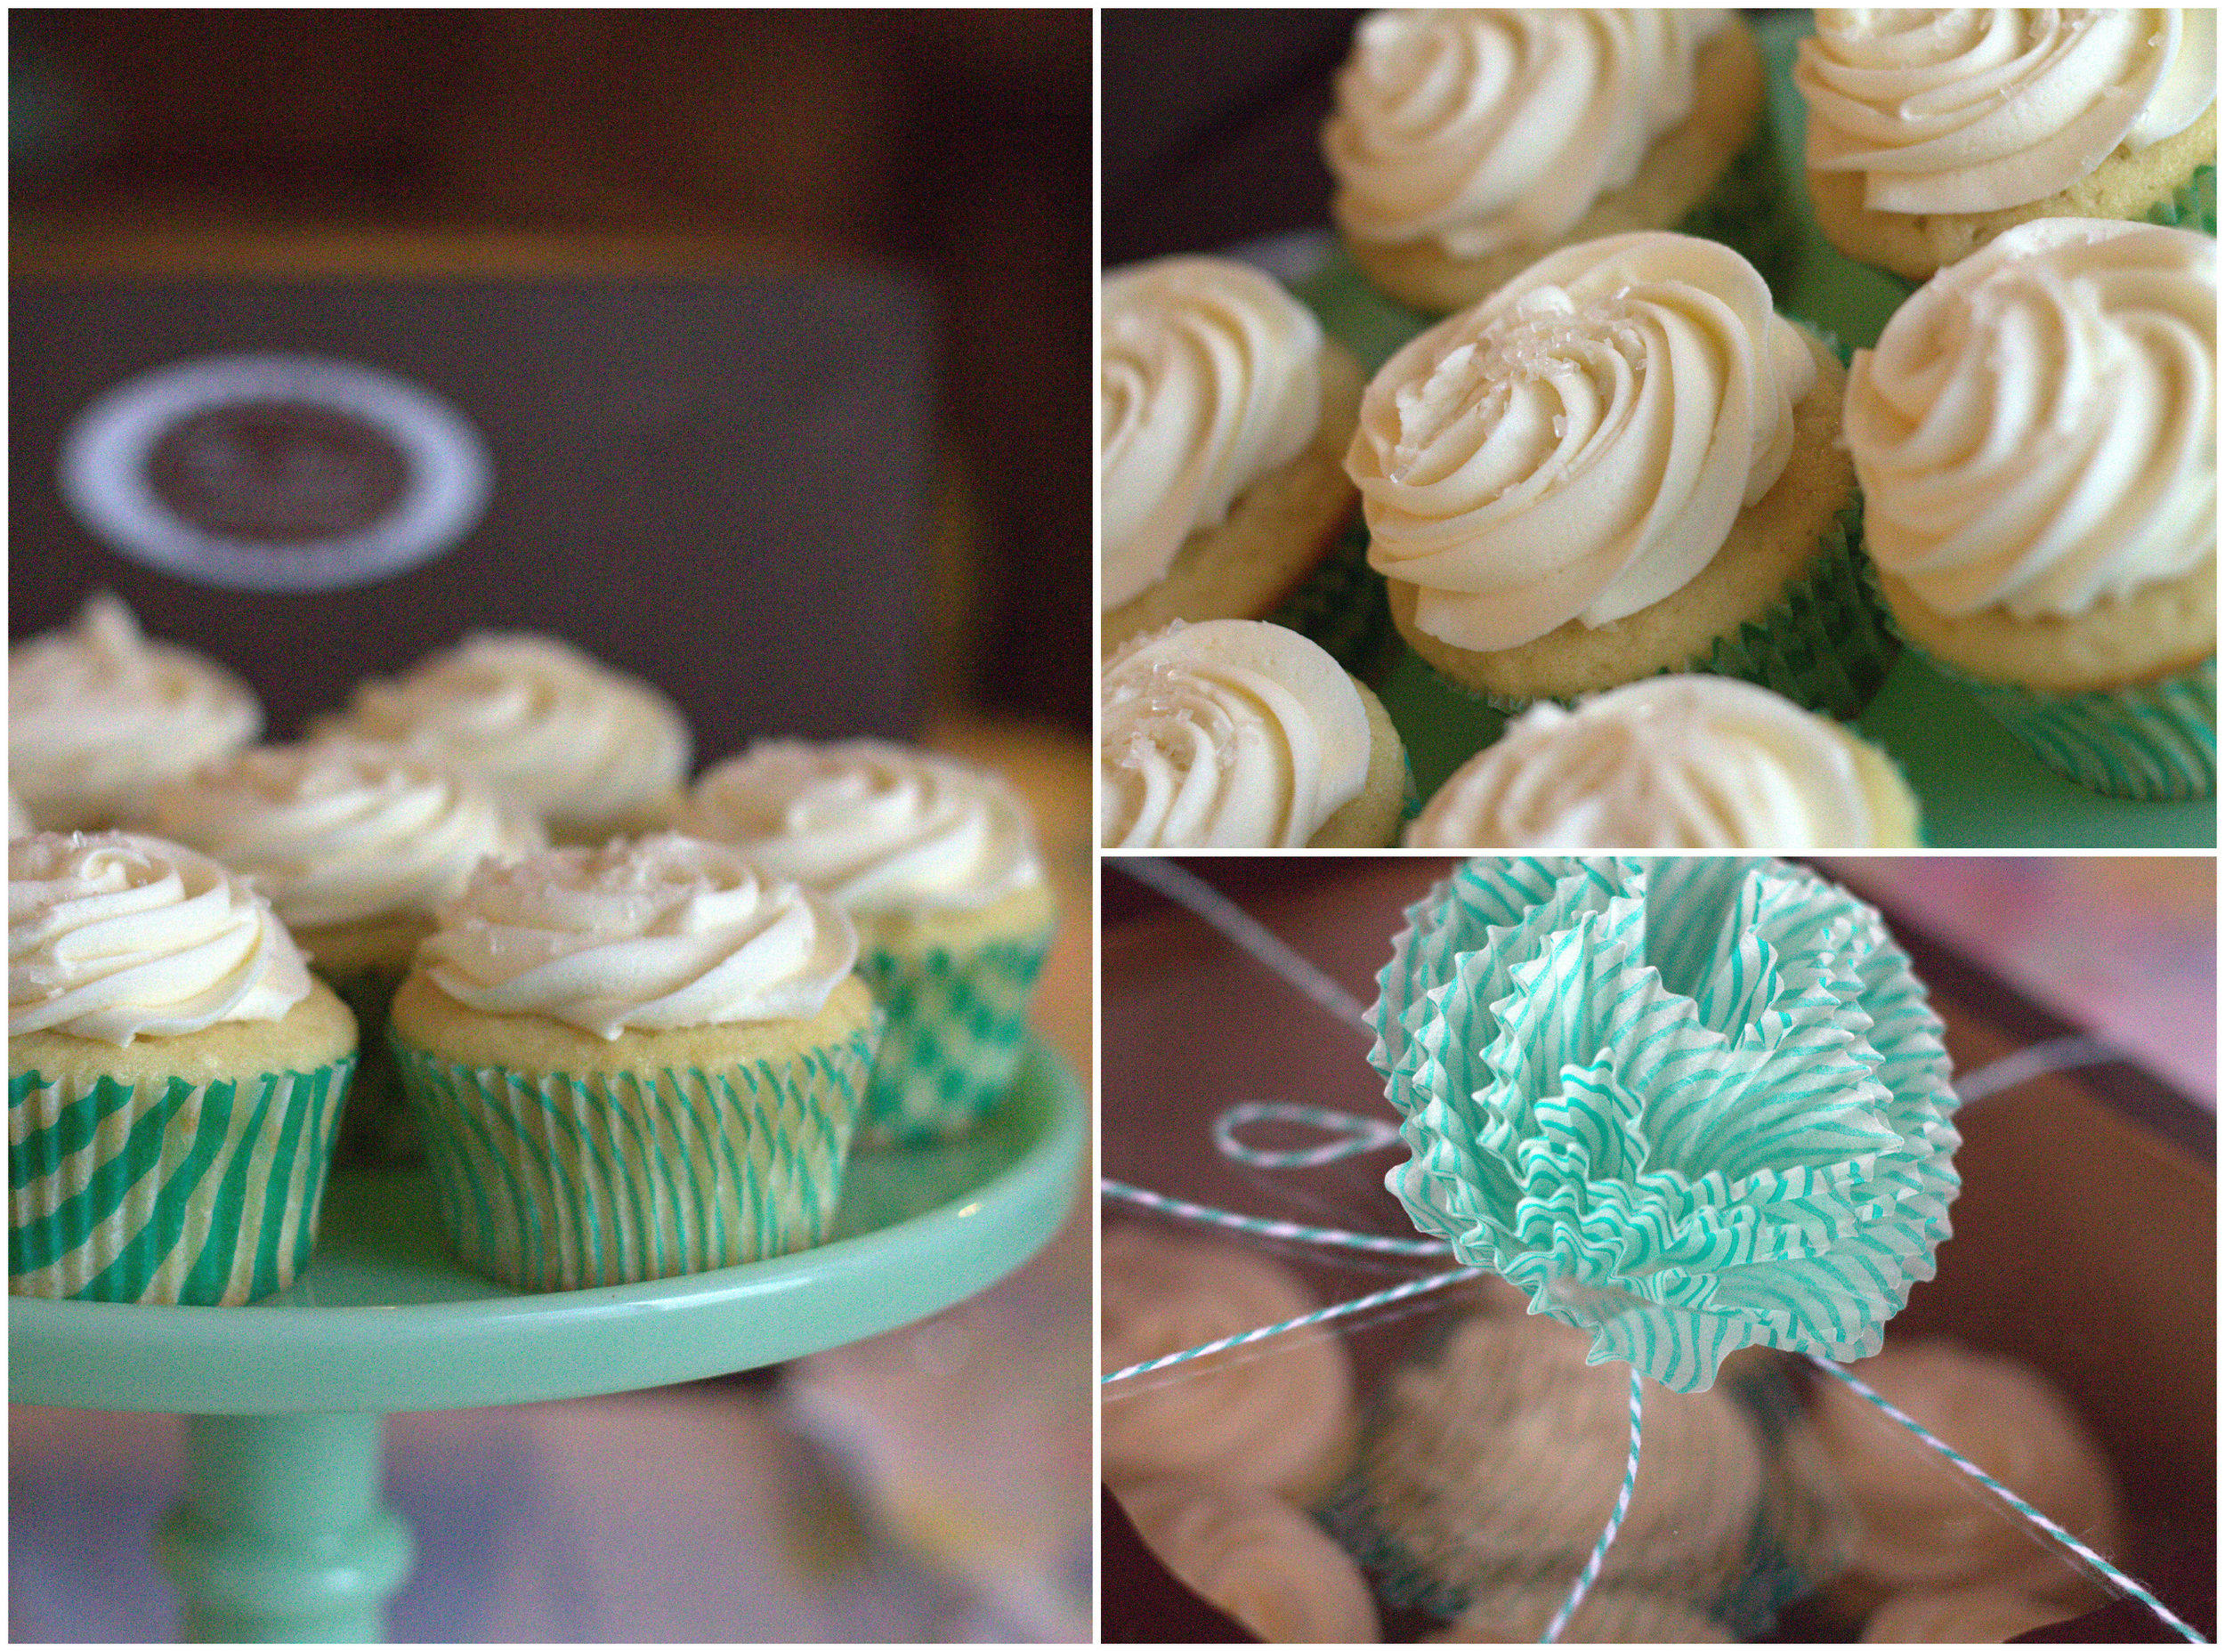 Confections16 - Double Vanilla Cupcakes.jpg